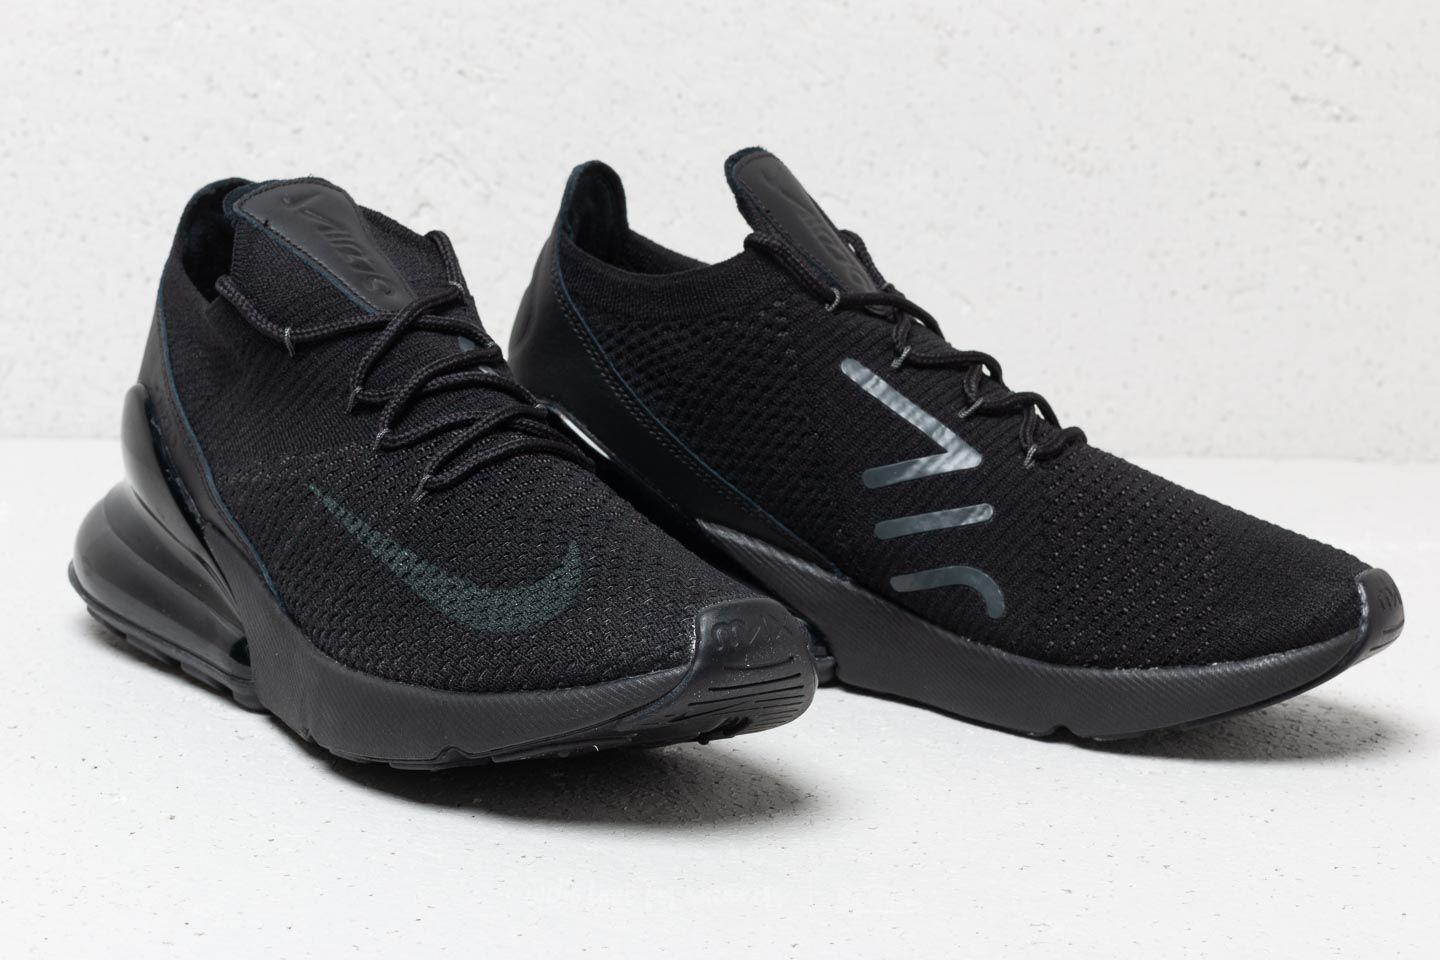 a56a41476d2a Lyst - Nike Air Max 270 Flyknit Black  Anthracite-black in Black for Men